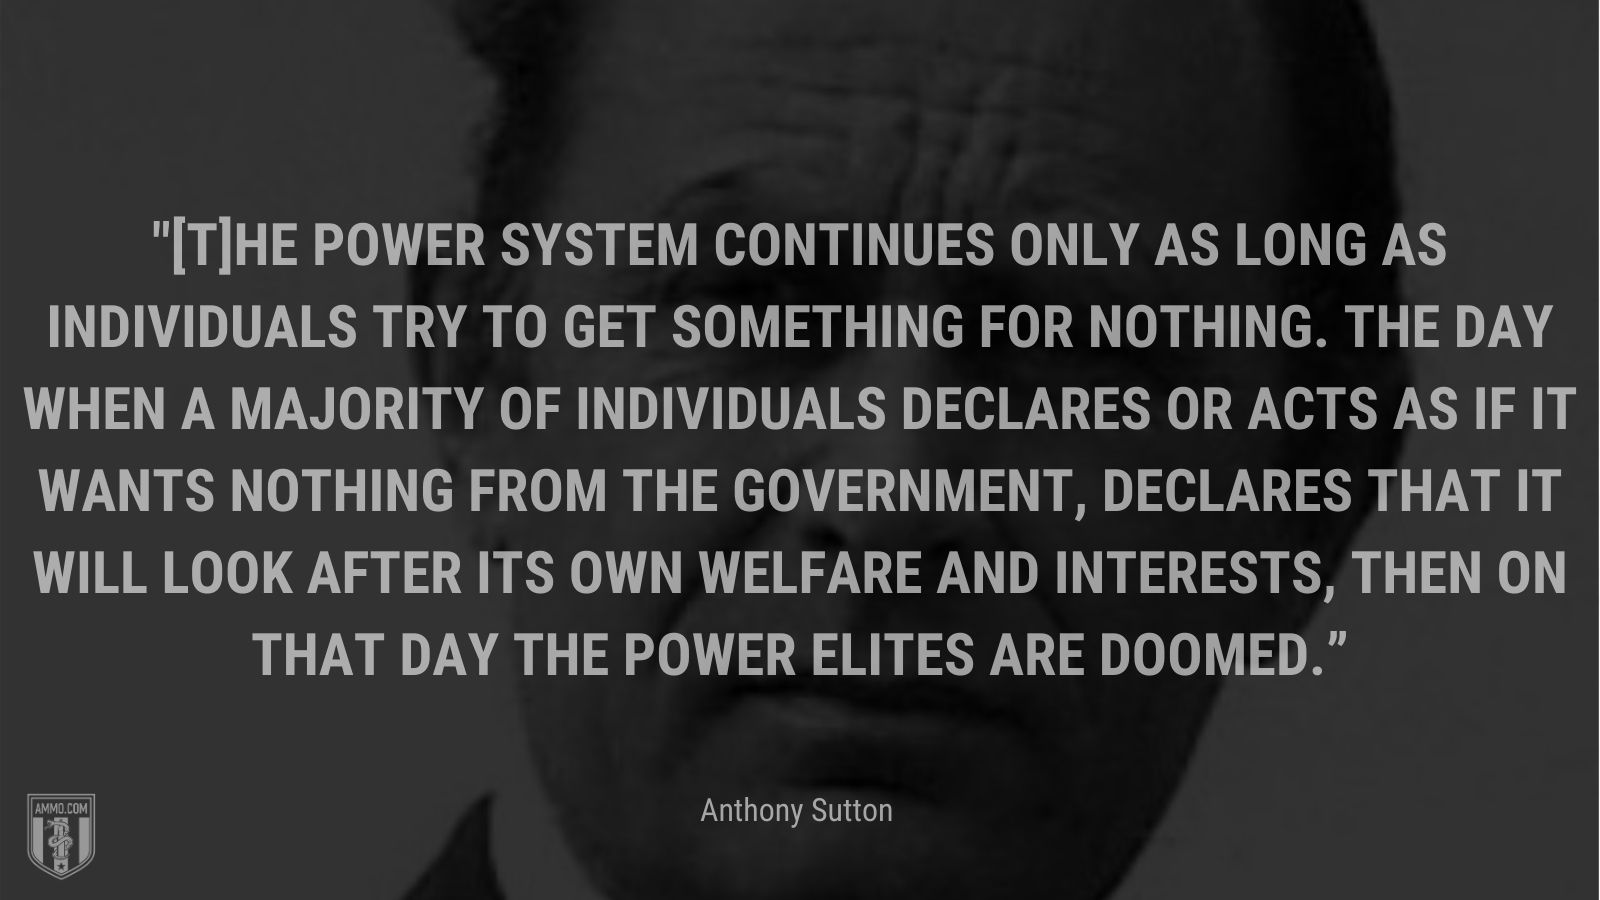 """""""[T]he power system continues only as long as individuals try to get something for nothing. The day when a majority of individuals declares or acts as if it wants nothing from the government, declares that it will look after its own welfare and interests, then on that day the power elites are doomed."""" - Anthony Sutton"""